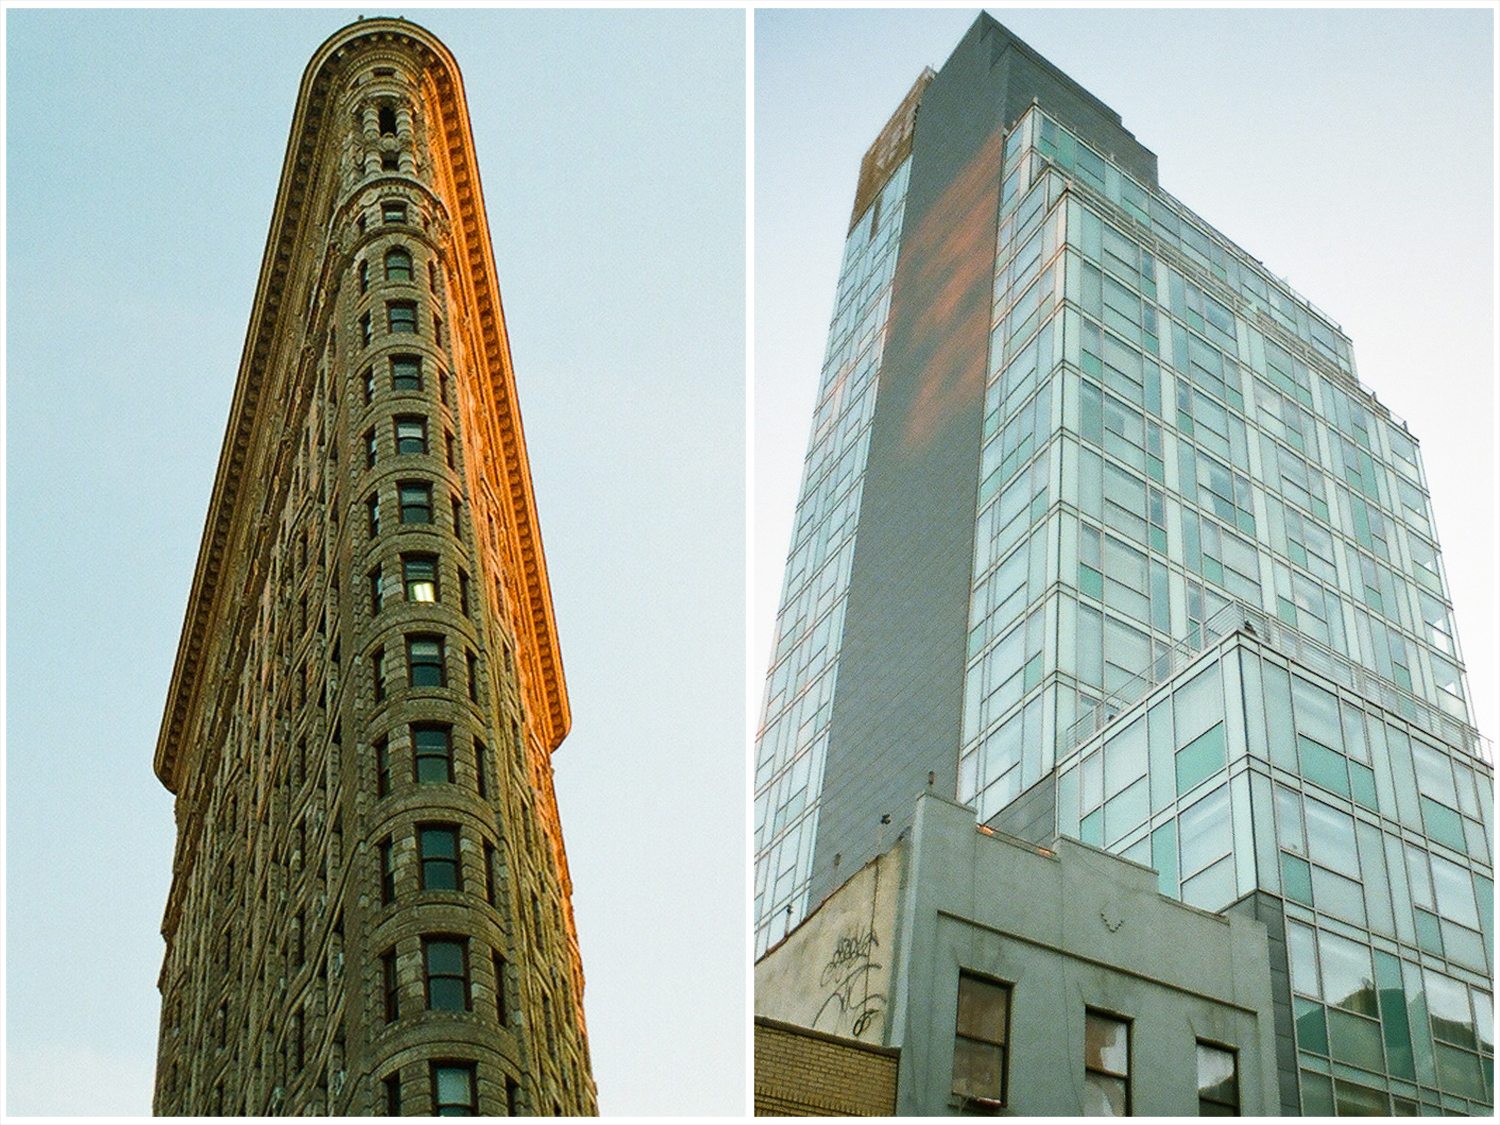 Flat Iron Building, Hotel on Rivington